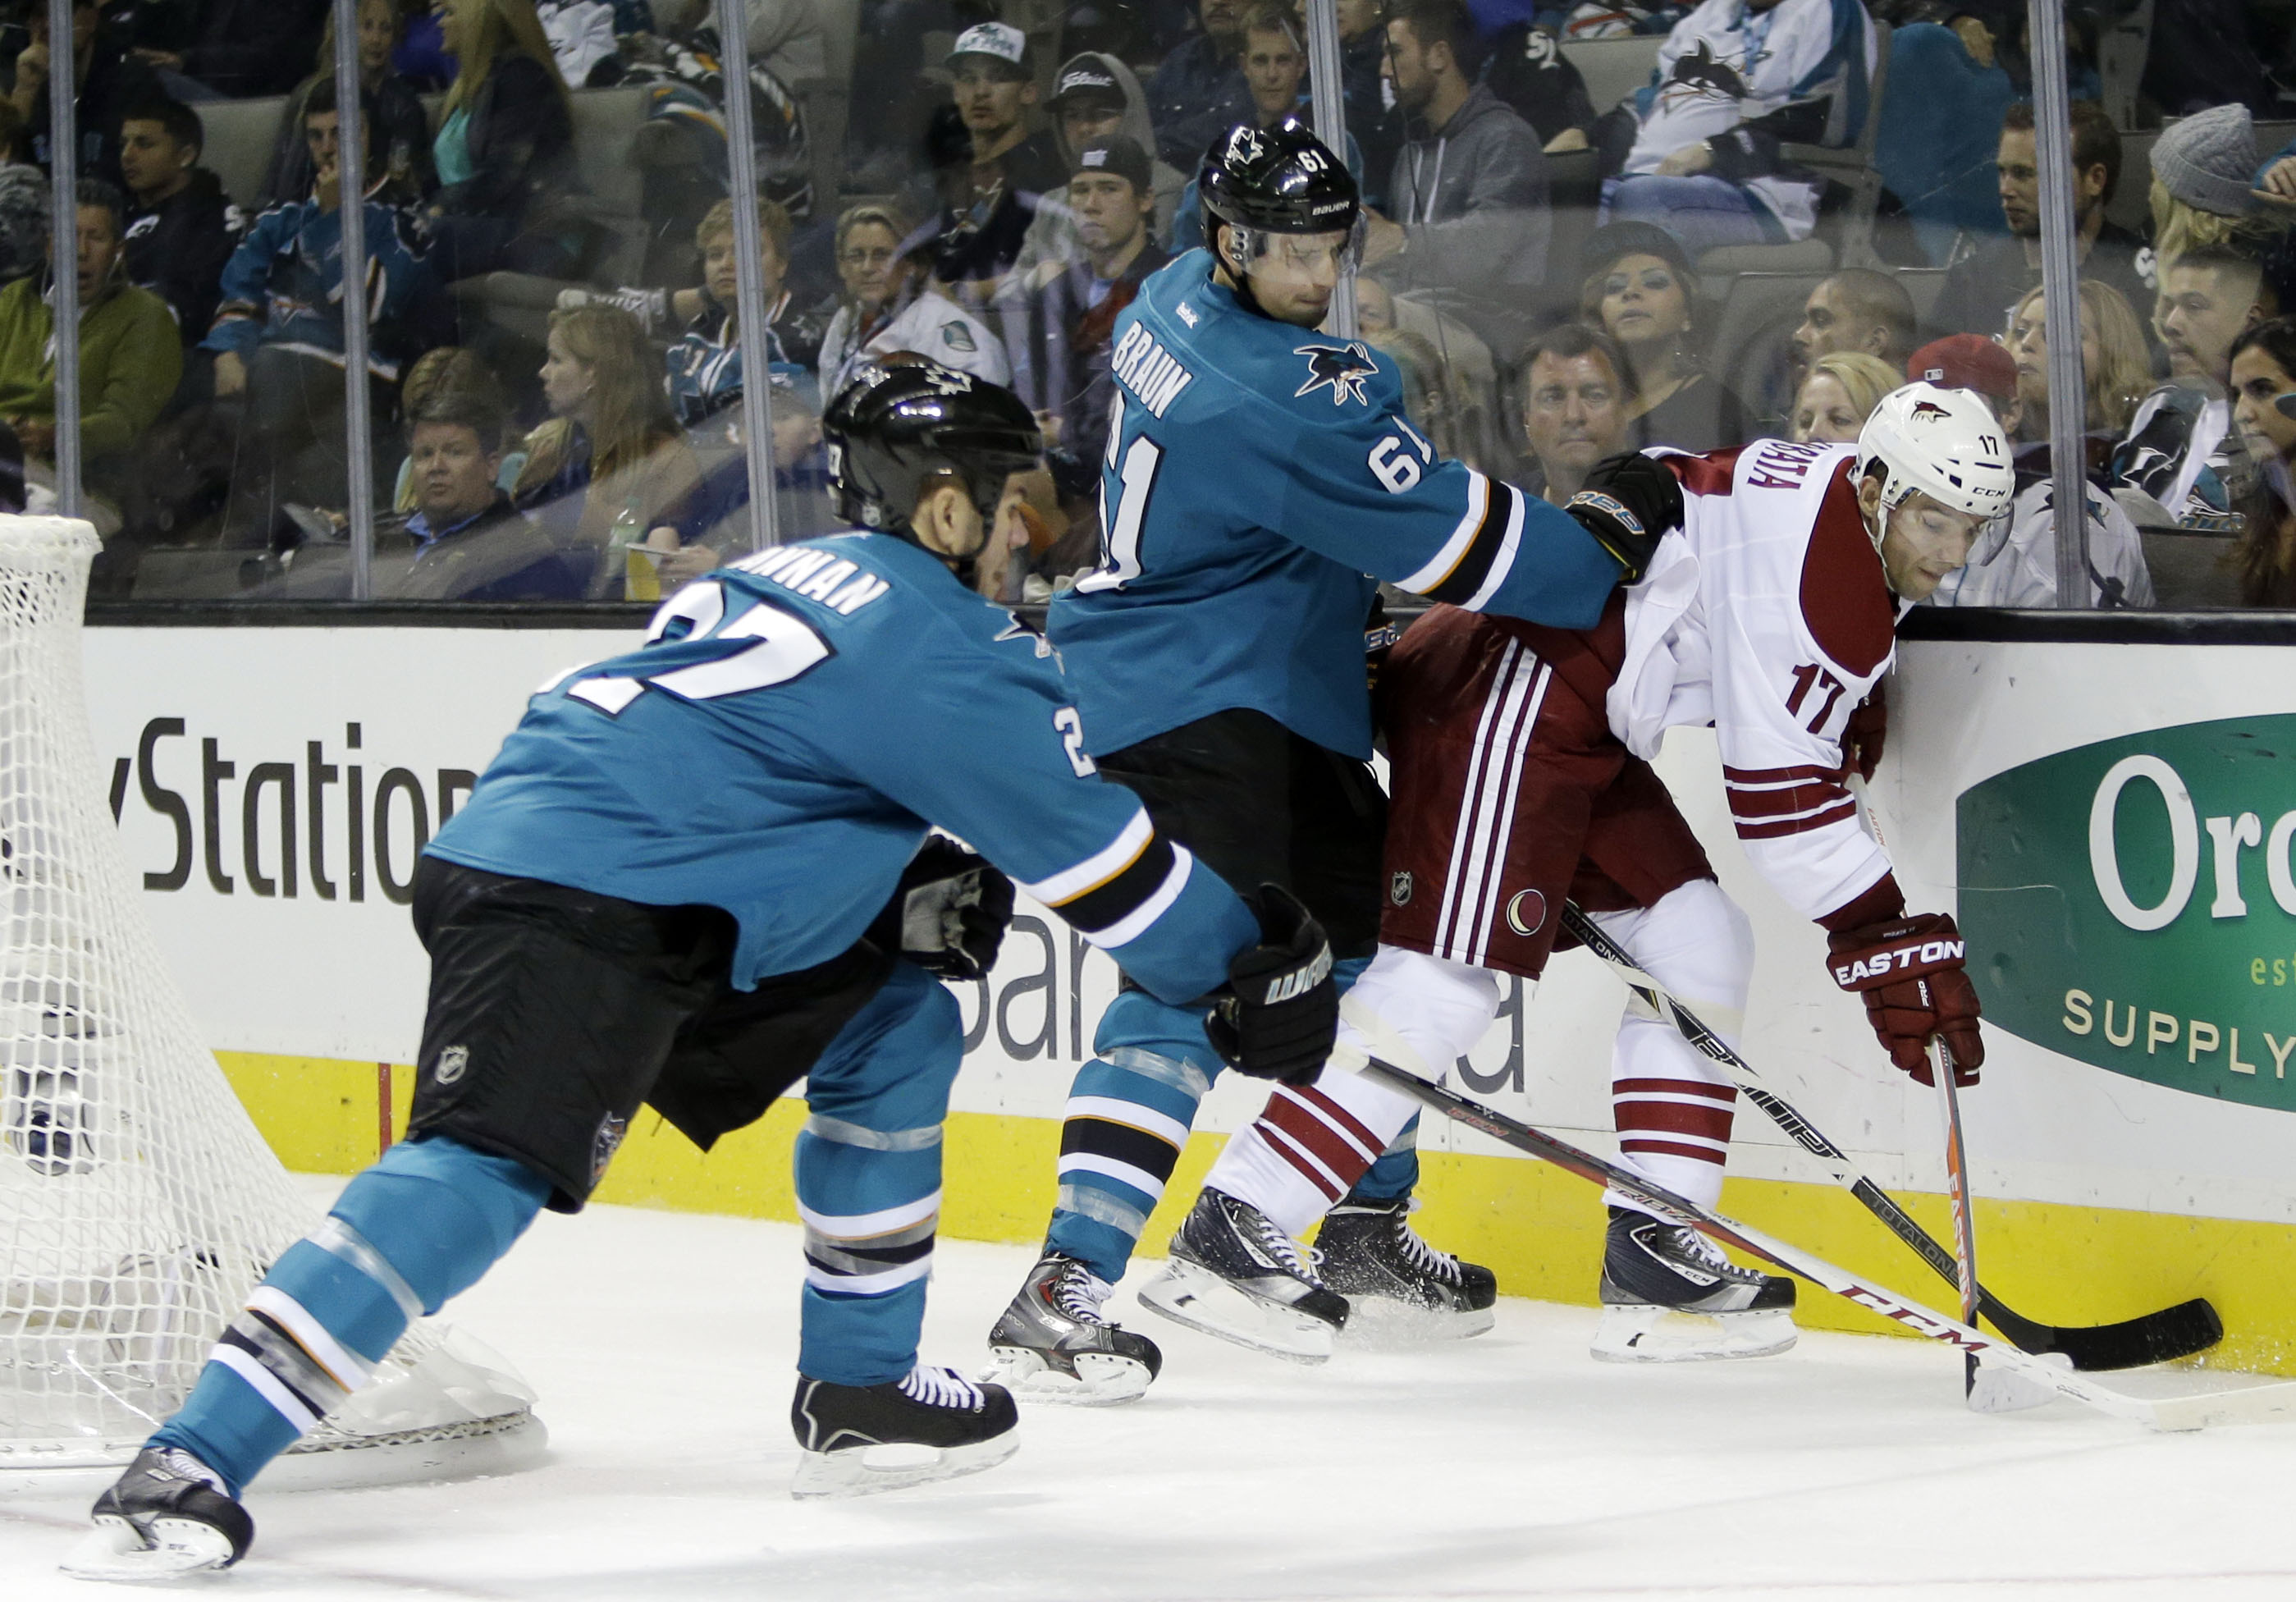 Phoenix Coyotes' Radim Vrbata (17), of the Czech Republic, is defended by San Jose Sharks' Justin Braun (61) and Scott Hannan (27) during the second period of an NHL hockey game on Saturday, Nov. 2, 2013, in San Jose, Calif